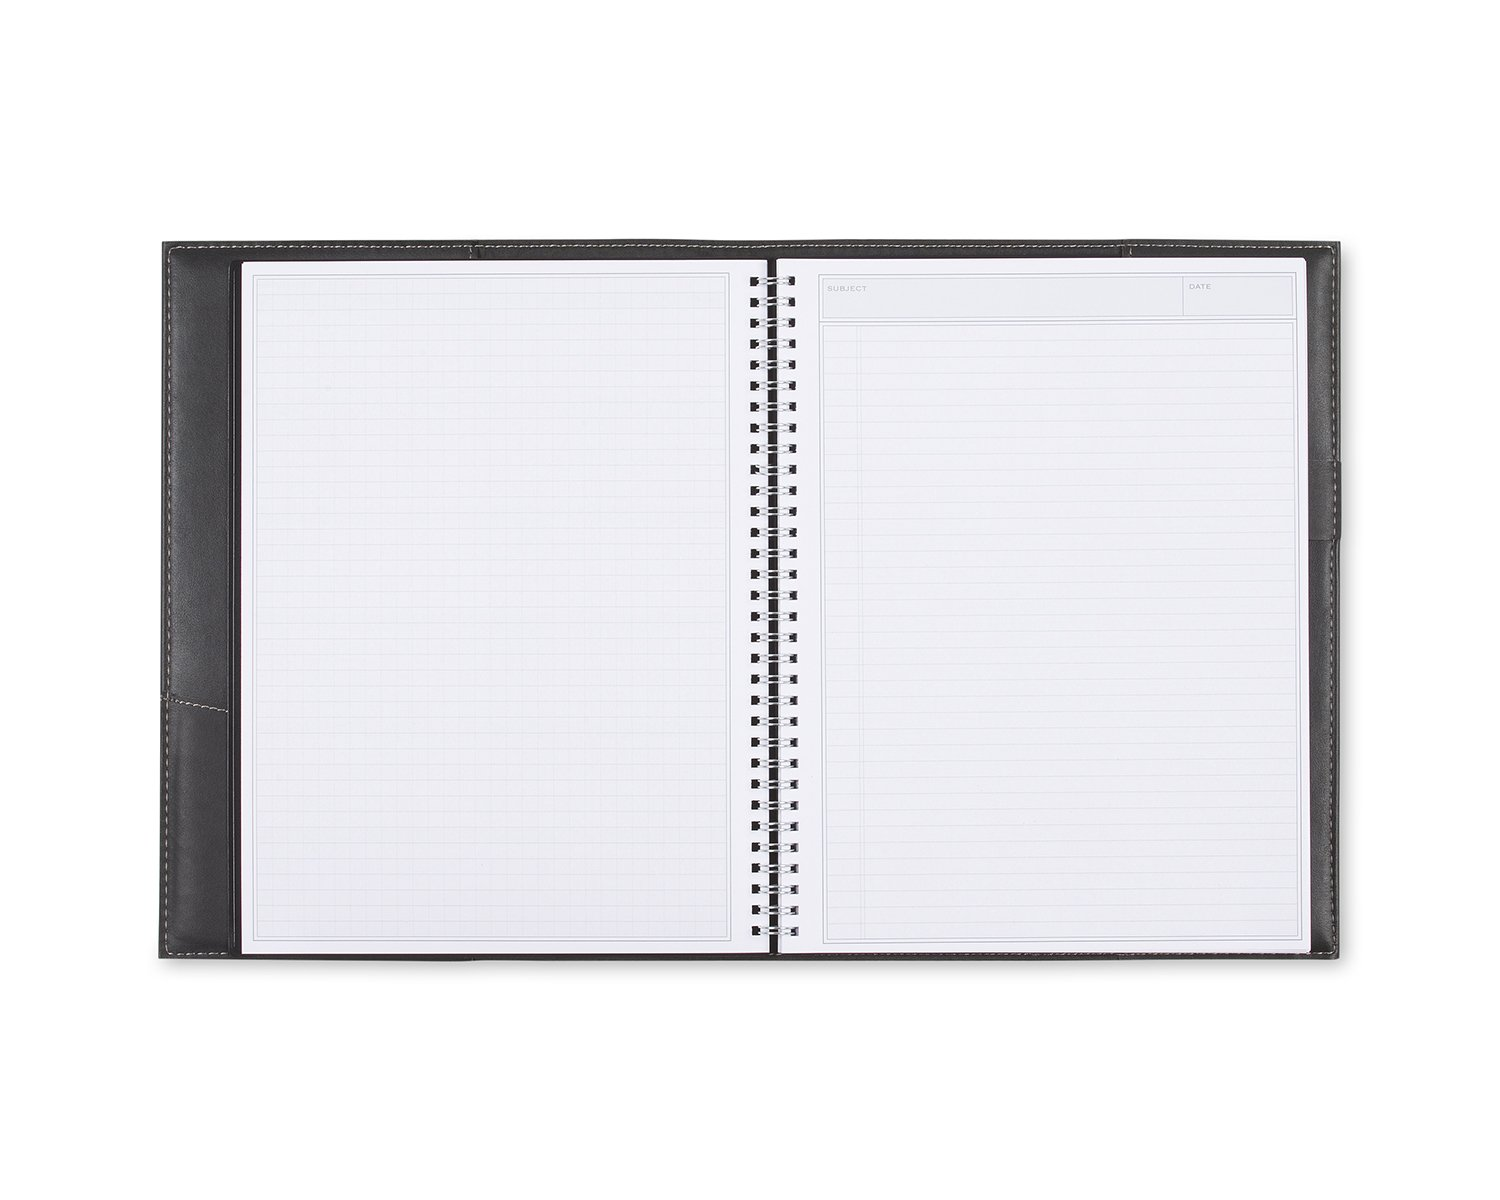 Blue Sky Professional Notebook, Leather-Like Textured Cover, Twin-Wire Binding, 8.5'' x 11'', Black by Blue Sky (Image #2)